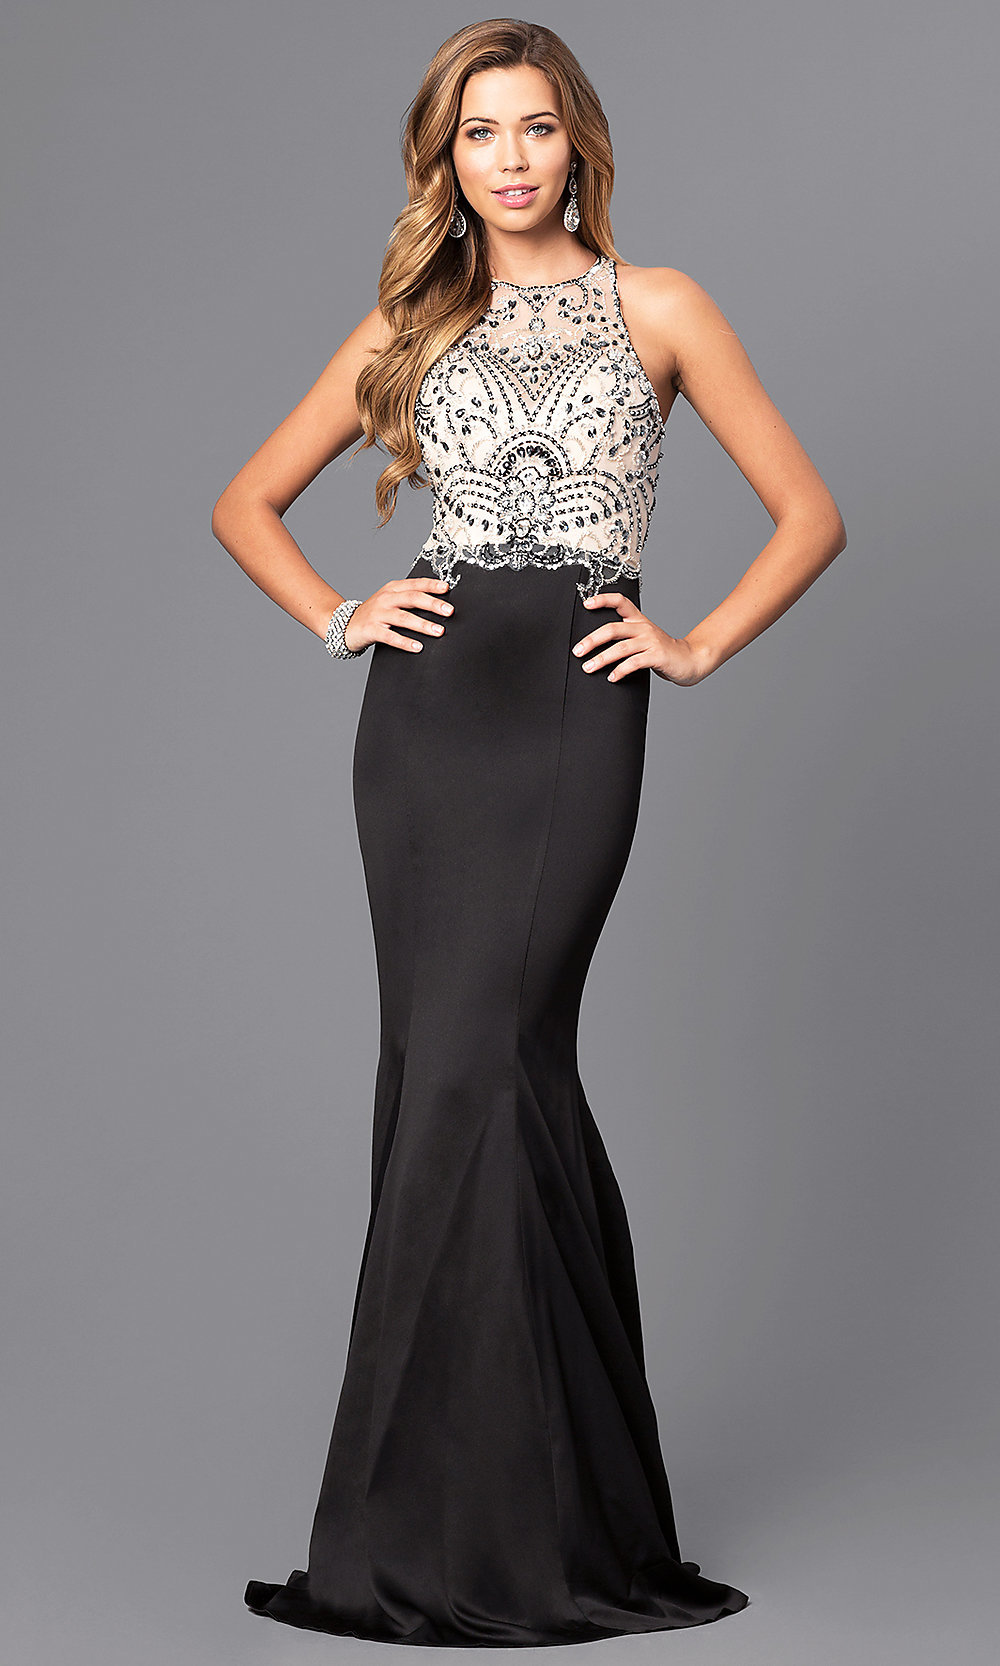 Satin Mermaid Prom Dress with Beaded Bodice-PromGirl